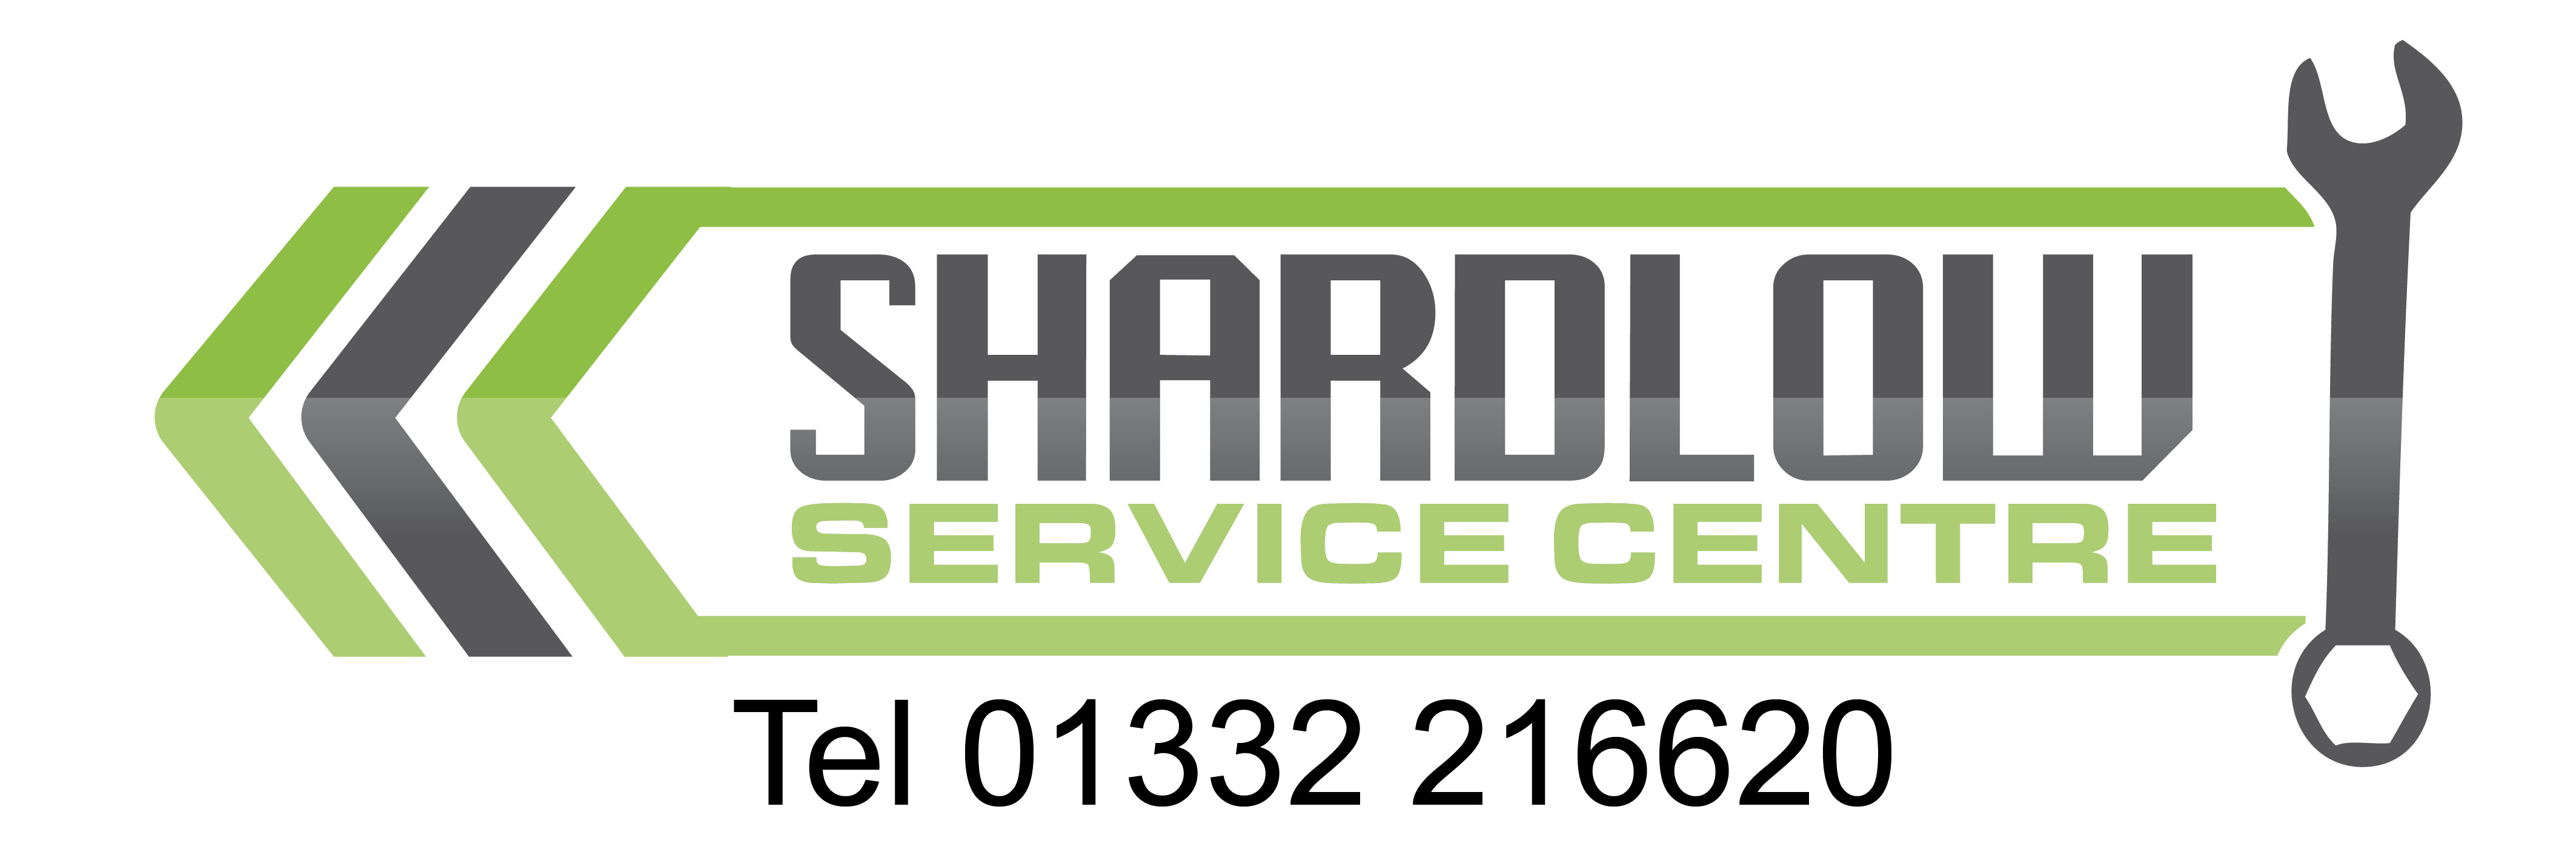 Shardlow Service Centre